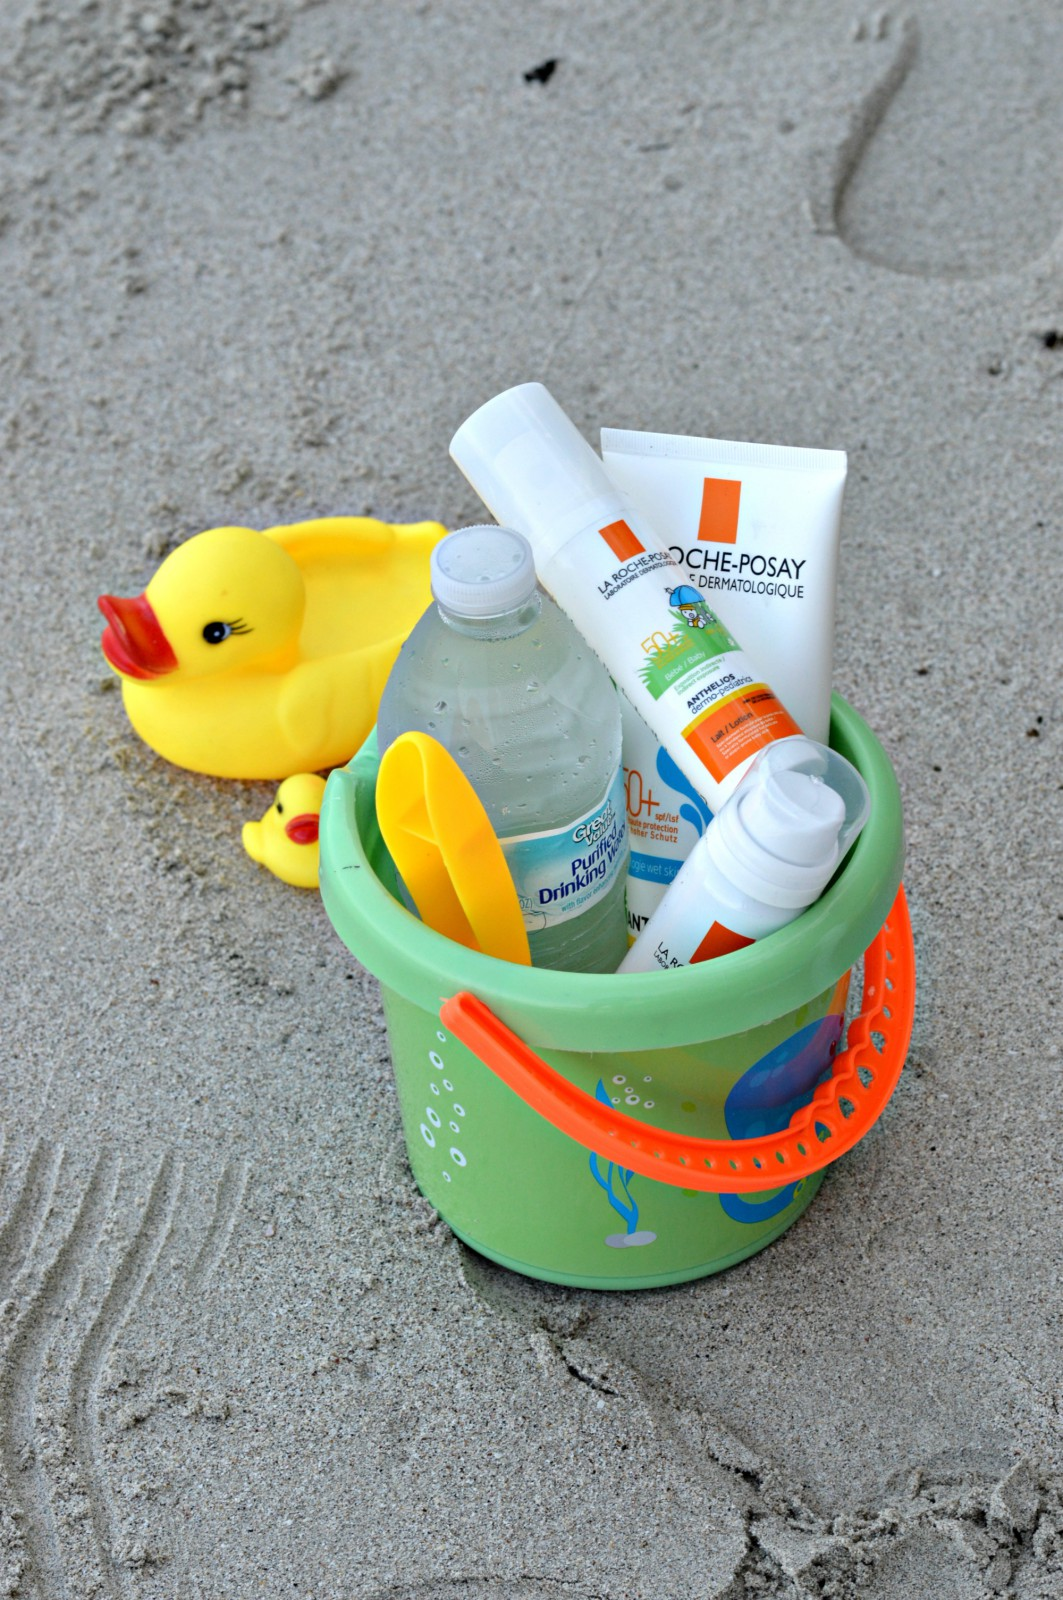 La Roche-Posay sunscreens_currently wearing_blog mode